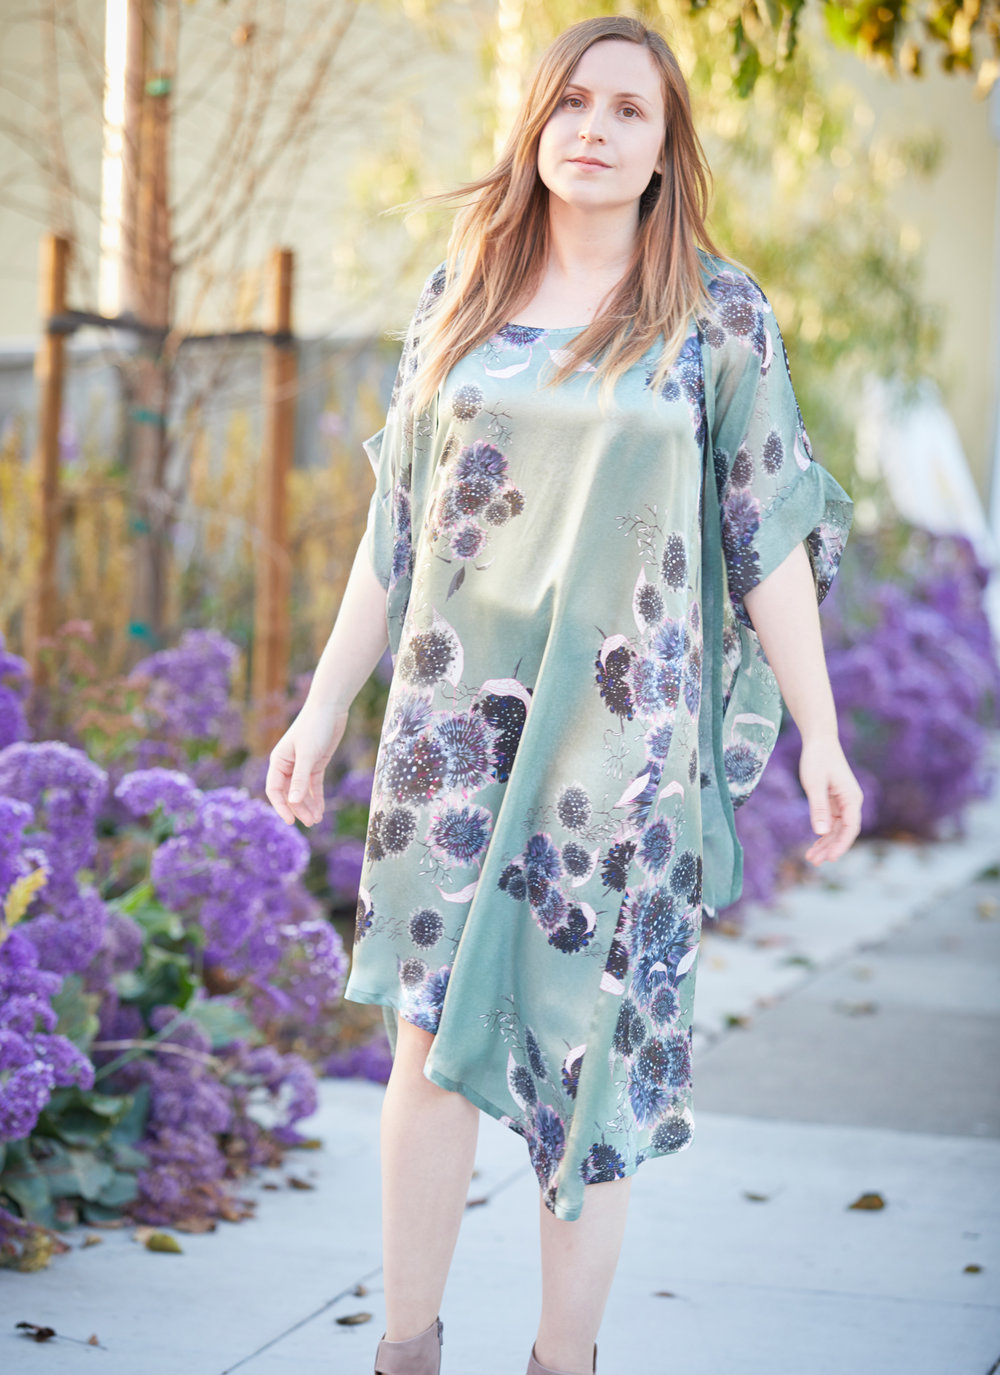 Euna Dress in Thistle Silk Print, Ezra Cardigan in Thistle Sheer Silk